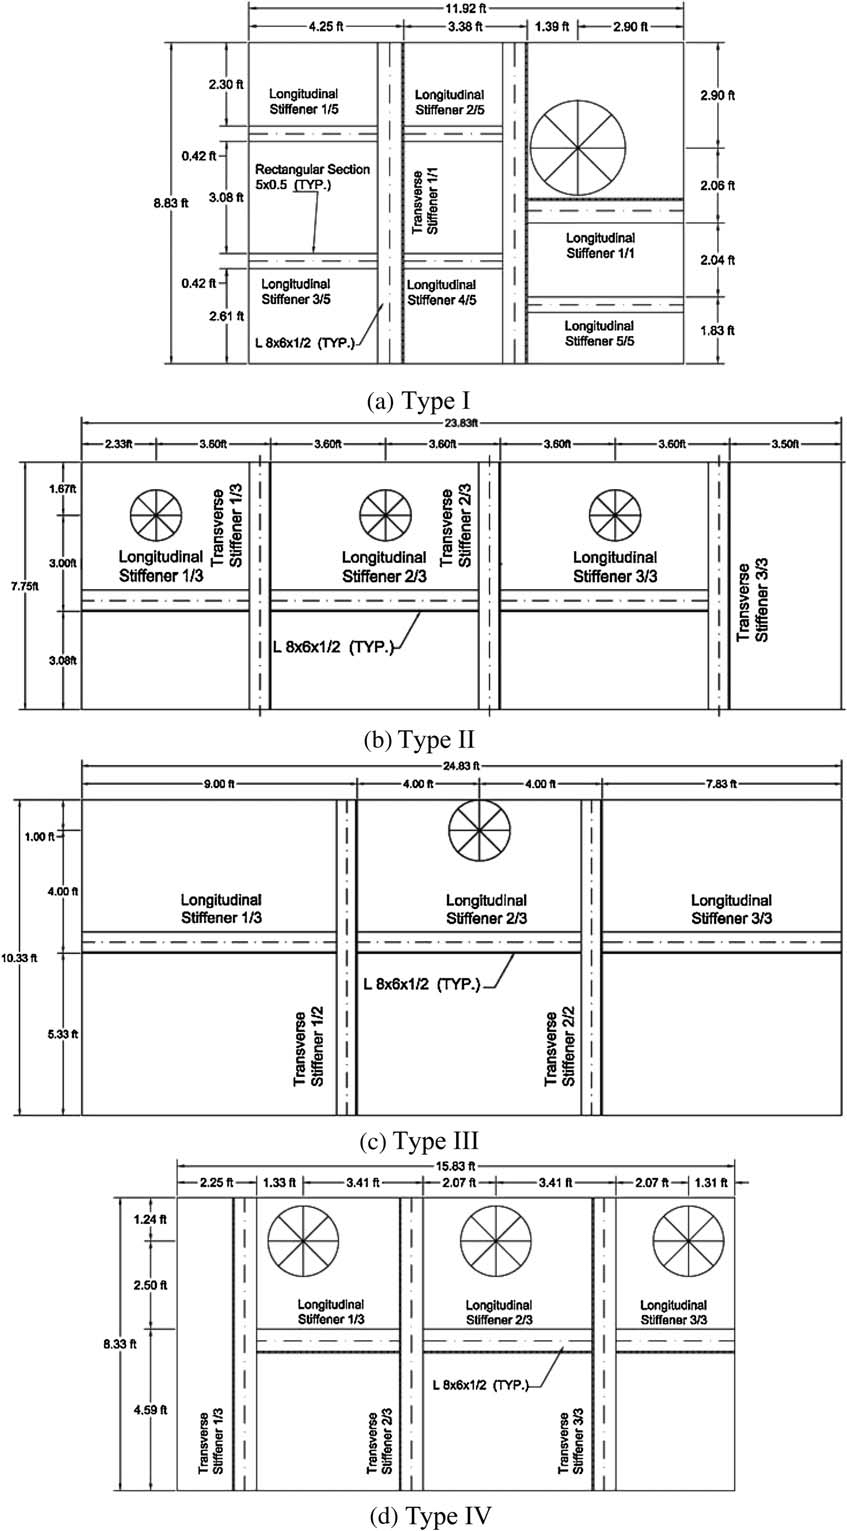 medium resolution of plan view of transformer bushing models showing the location of flexural stiffeners on the tank